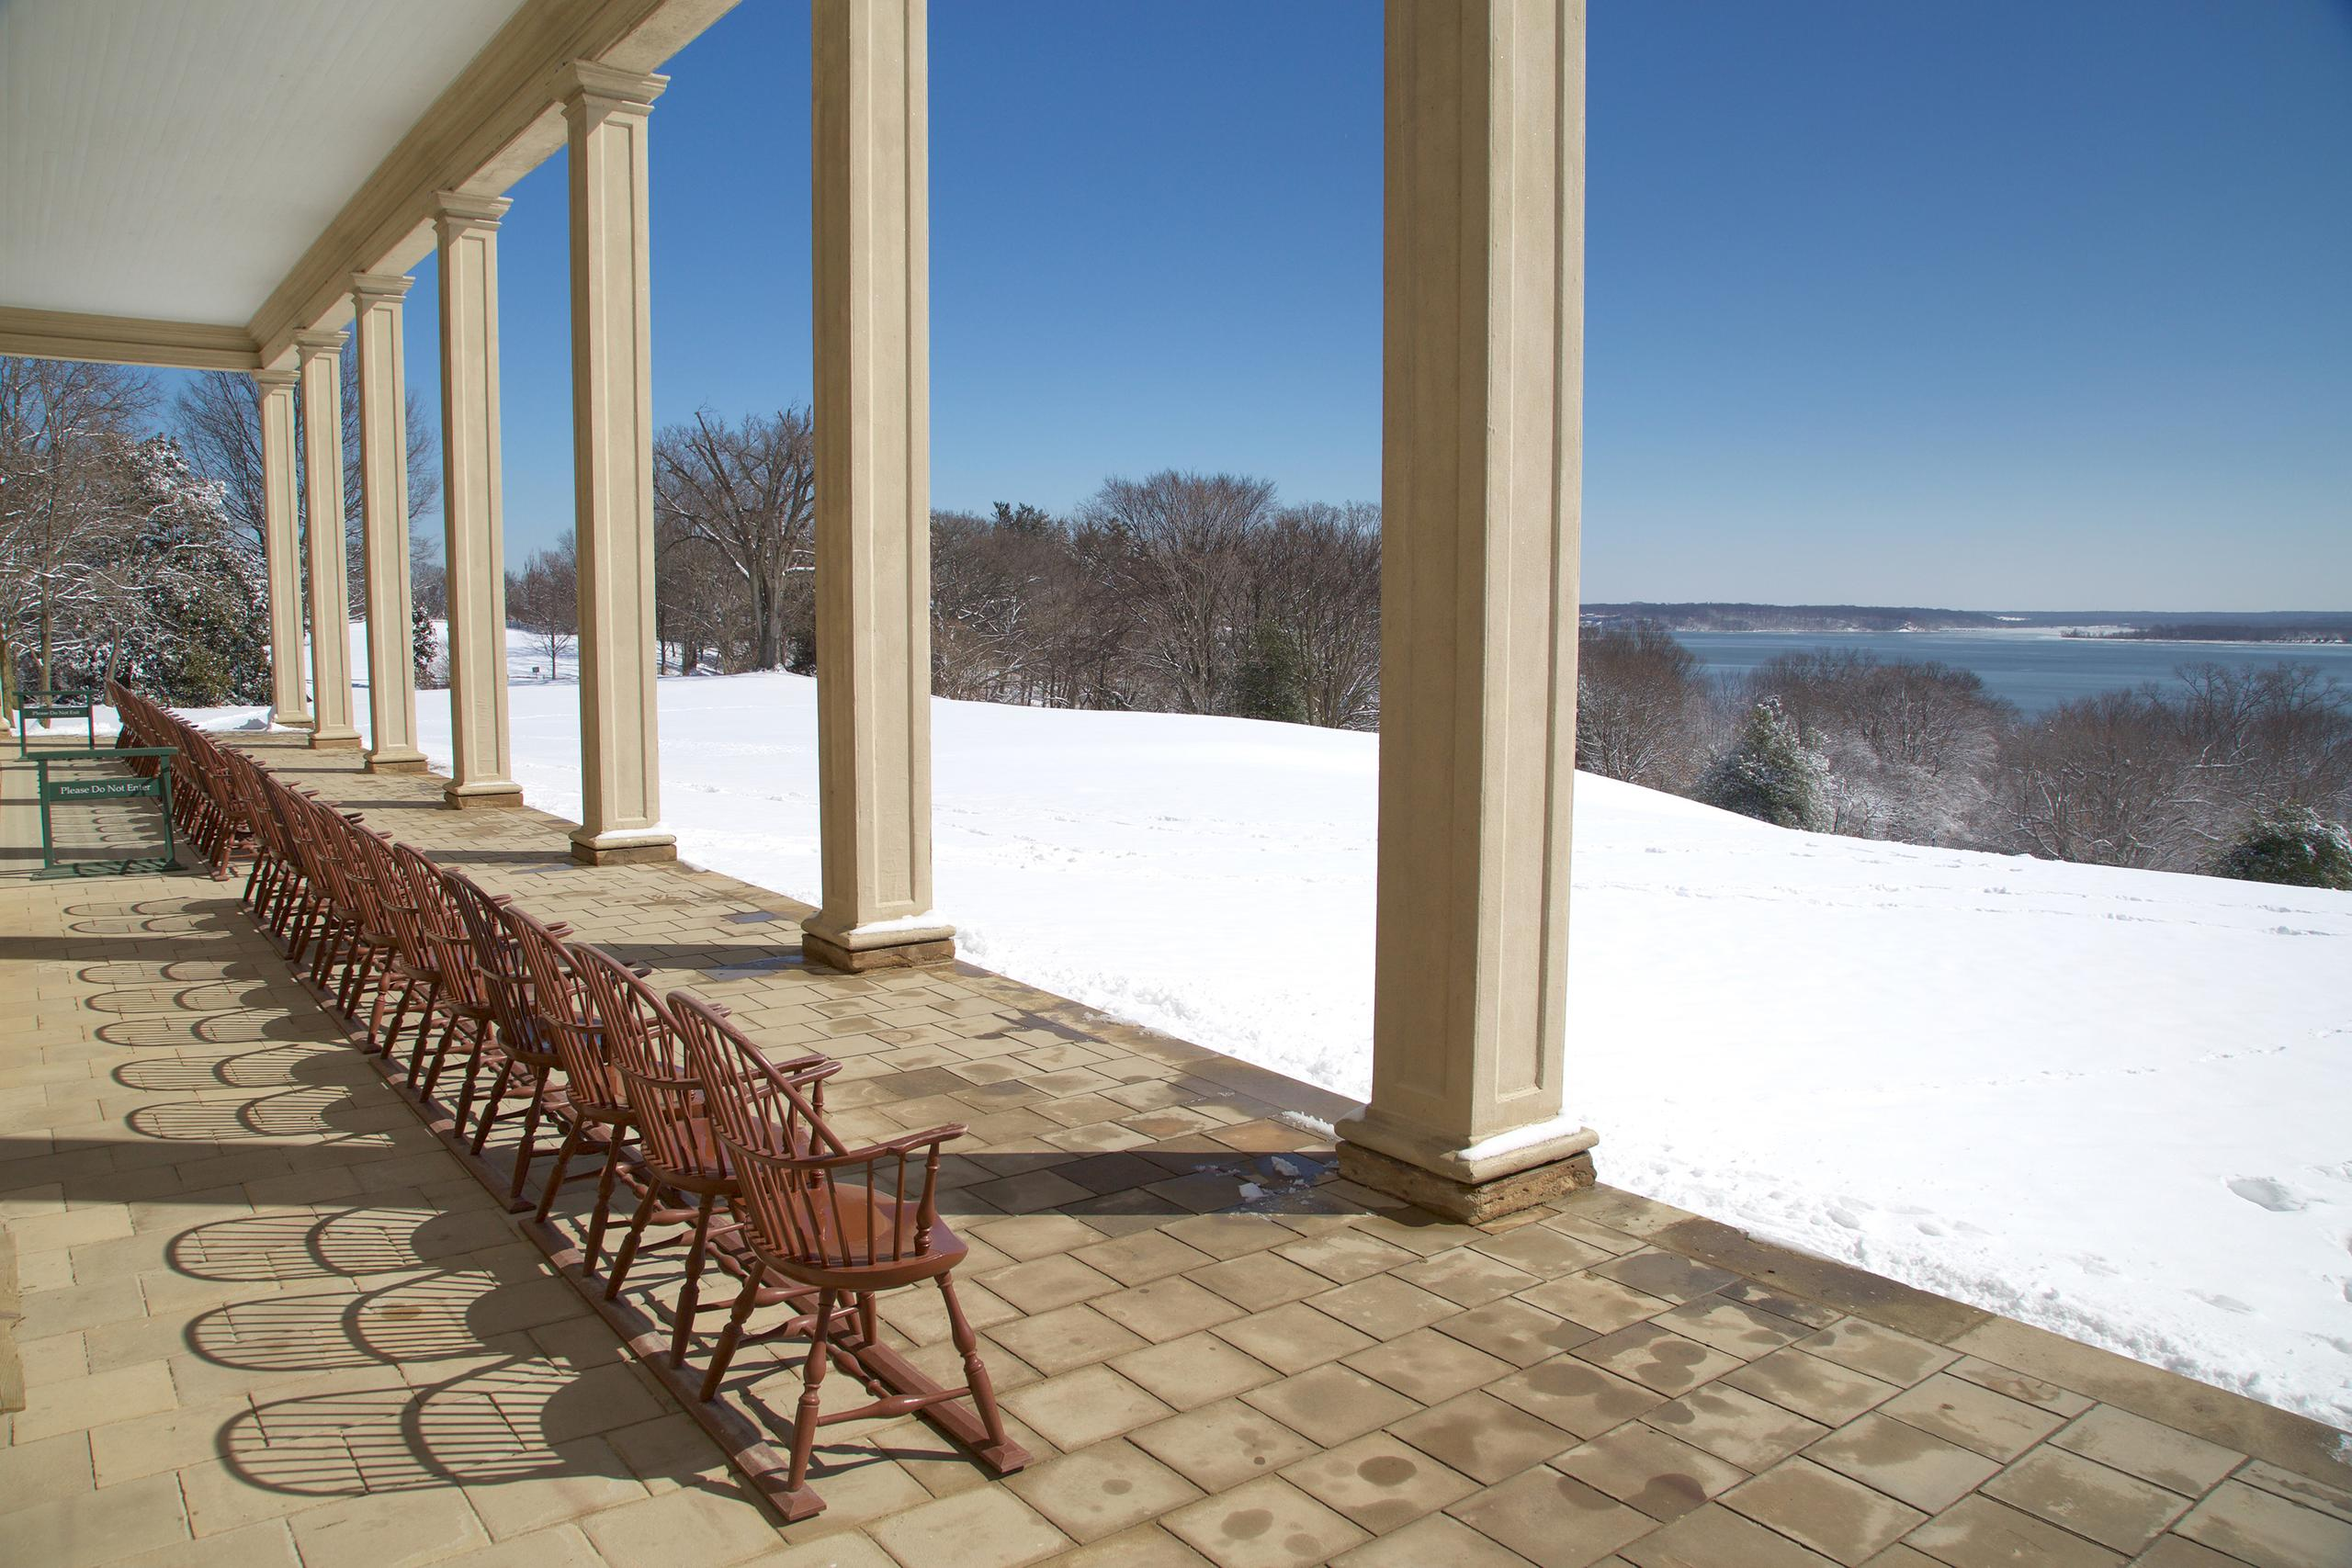 View from the Mount Vernon piazza on a snowy, winter's day (Rob Shenk - Mount Vernon Ladies' Association)